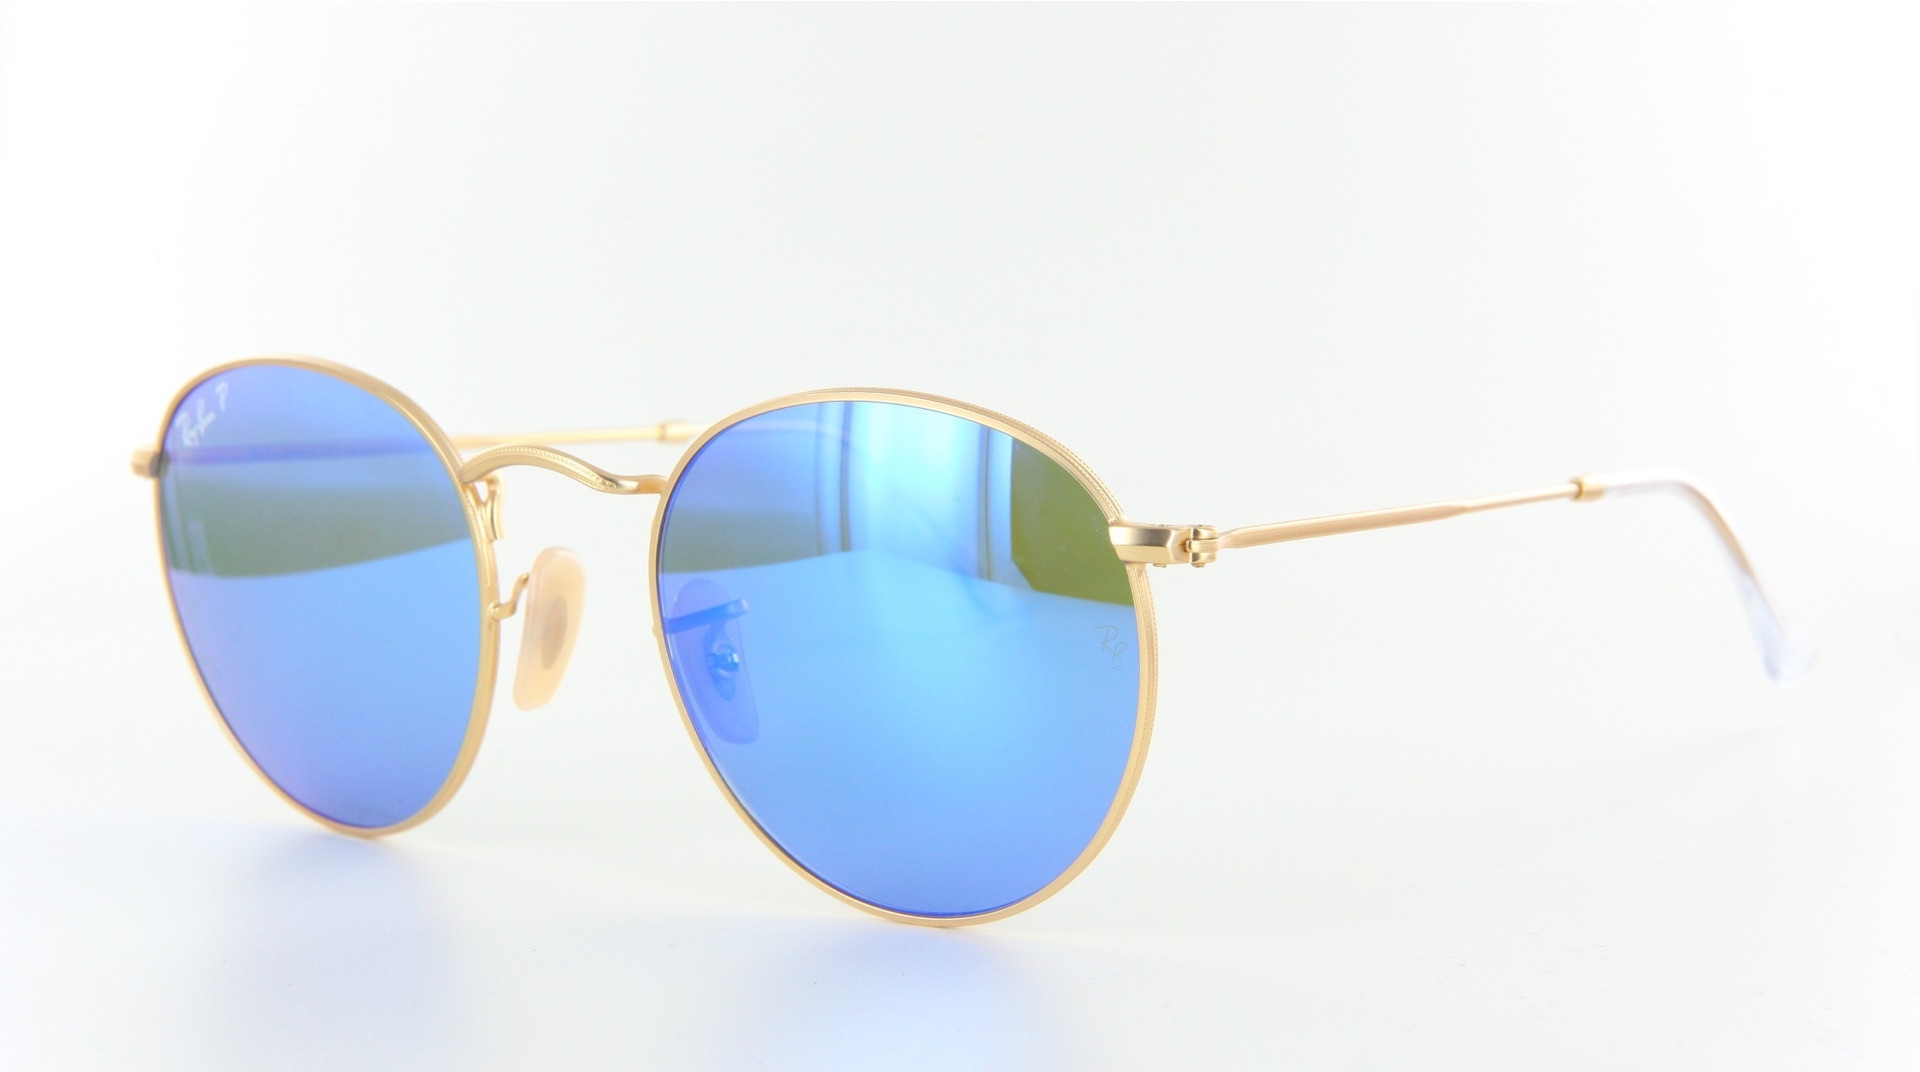 Ray-Ban - ref: 72406